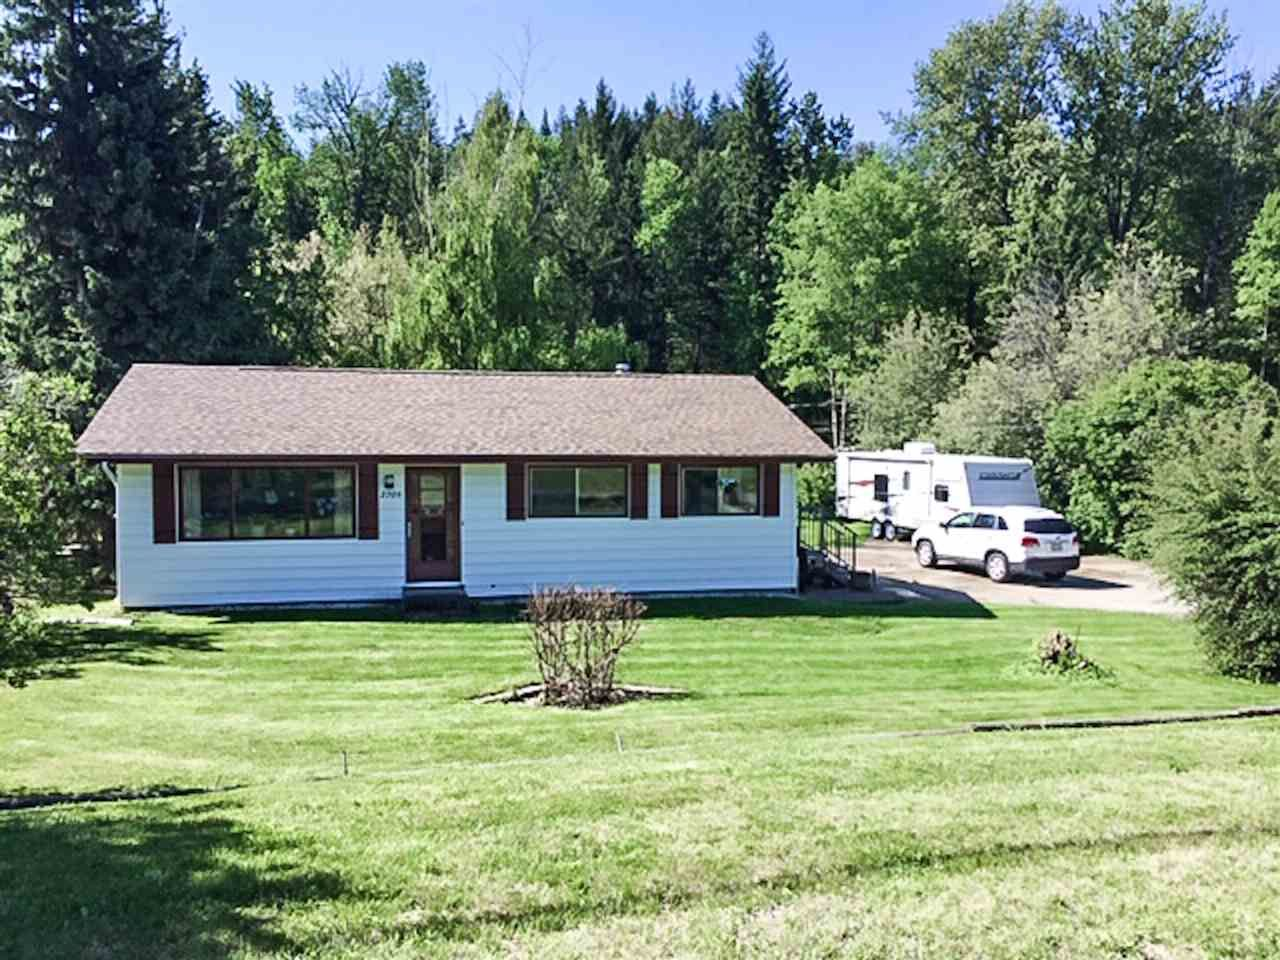 Main Photo: 2709 PETERSEN Road in Prince George: Peden Hill House for sale (PG City West (Zone 71))  : MLS®# R2524747